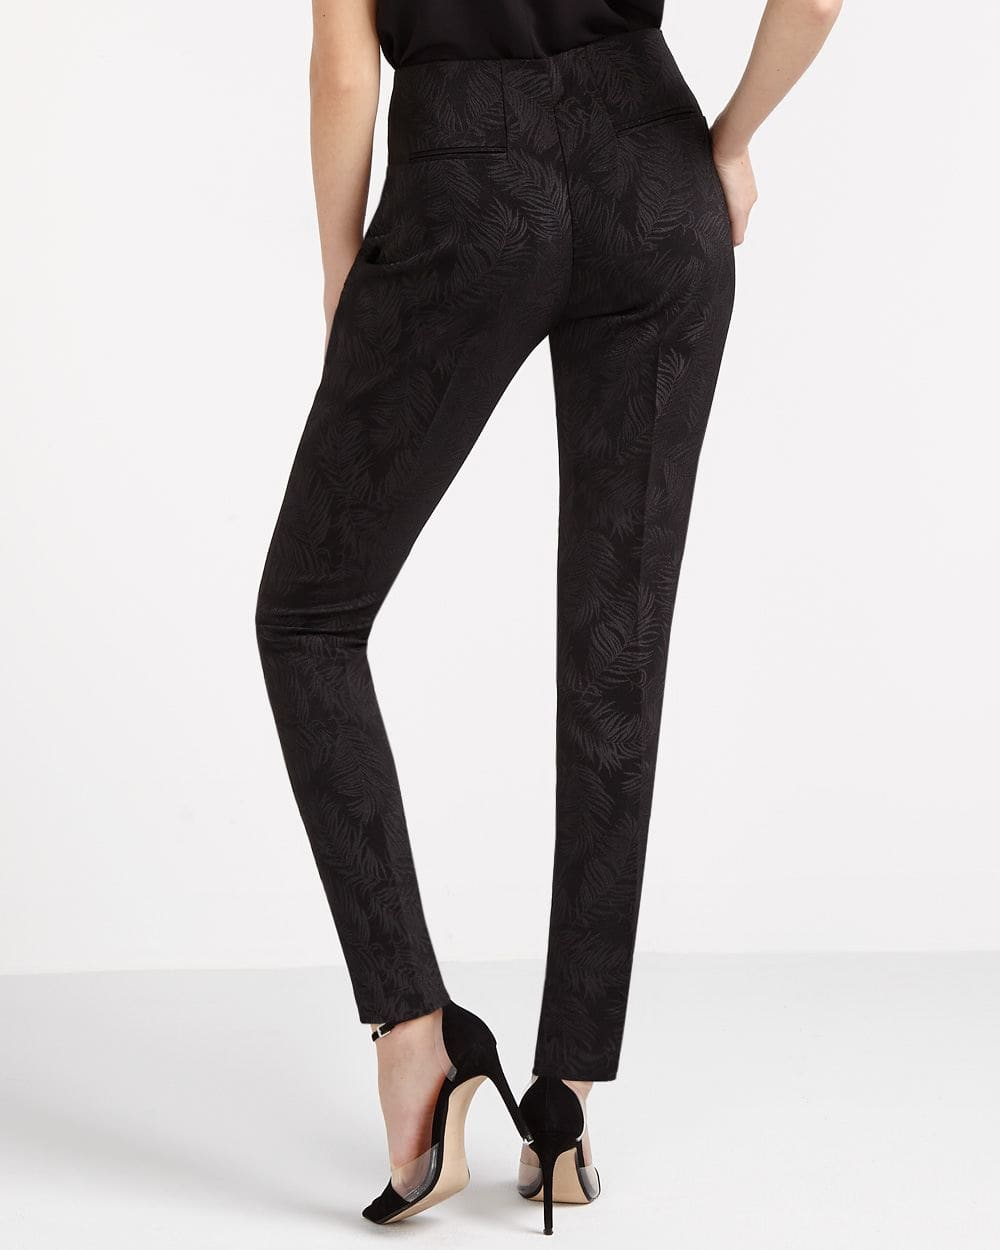 Willow & Thread Jacquard Cigarette Pants